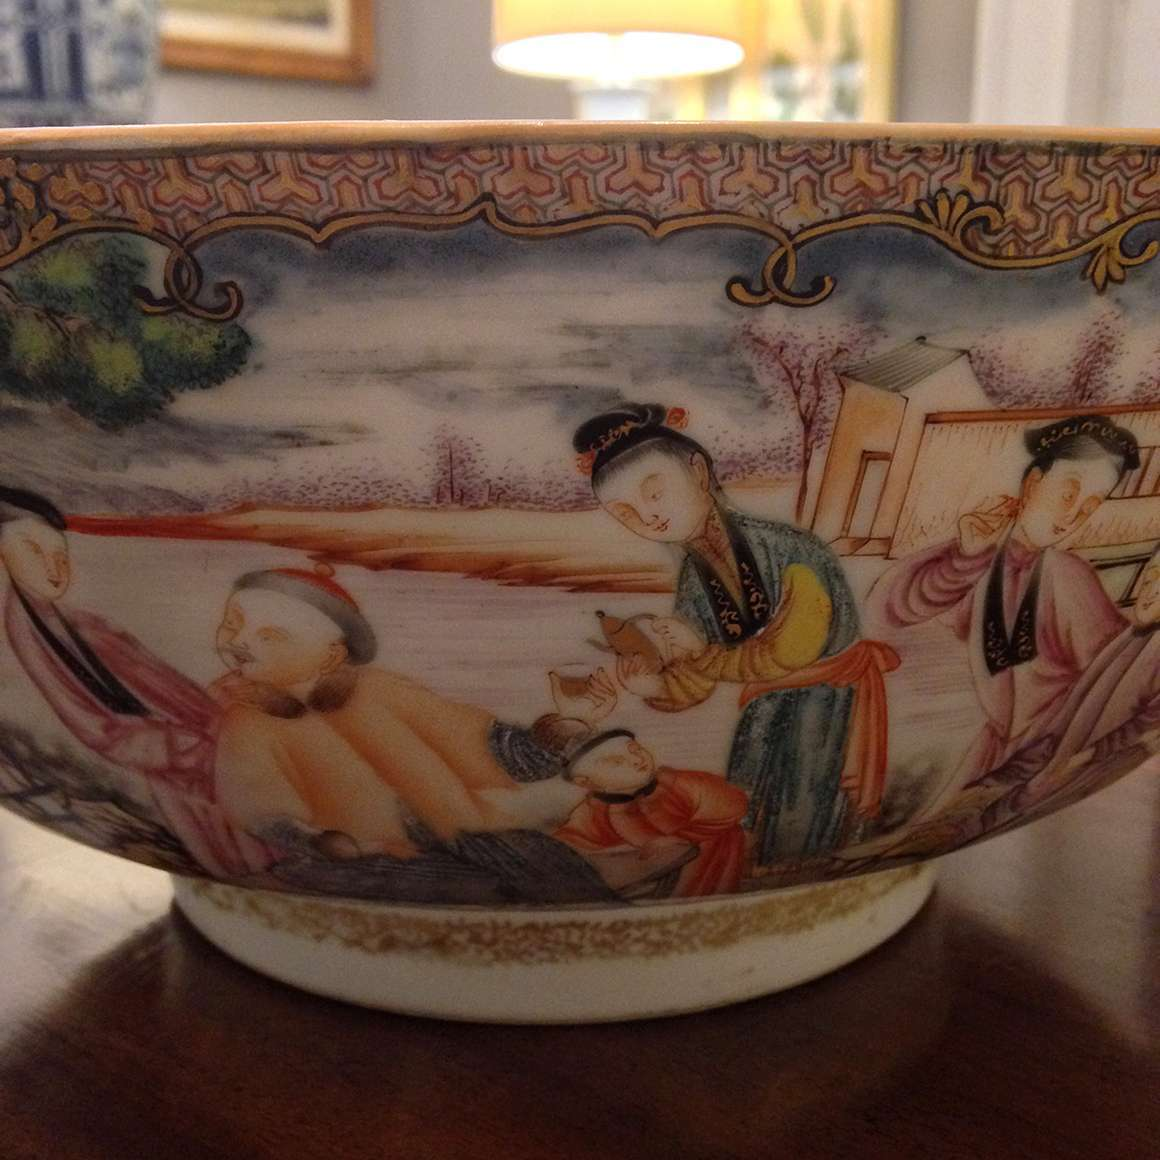 3024 – Chinese Export Xianfeng Famille Rose Medallion Porcelain Bowl